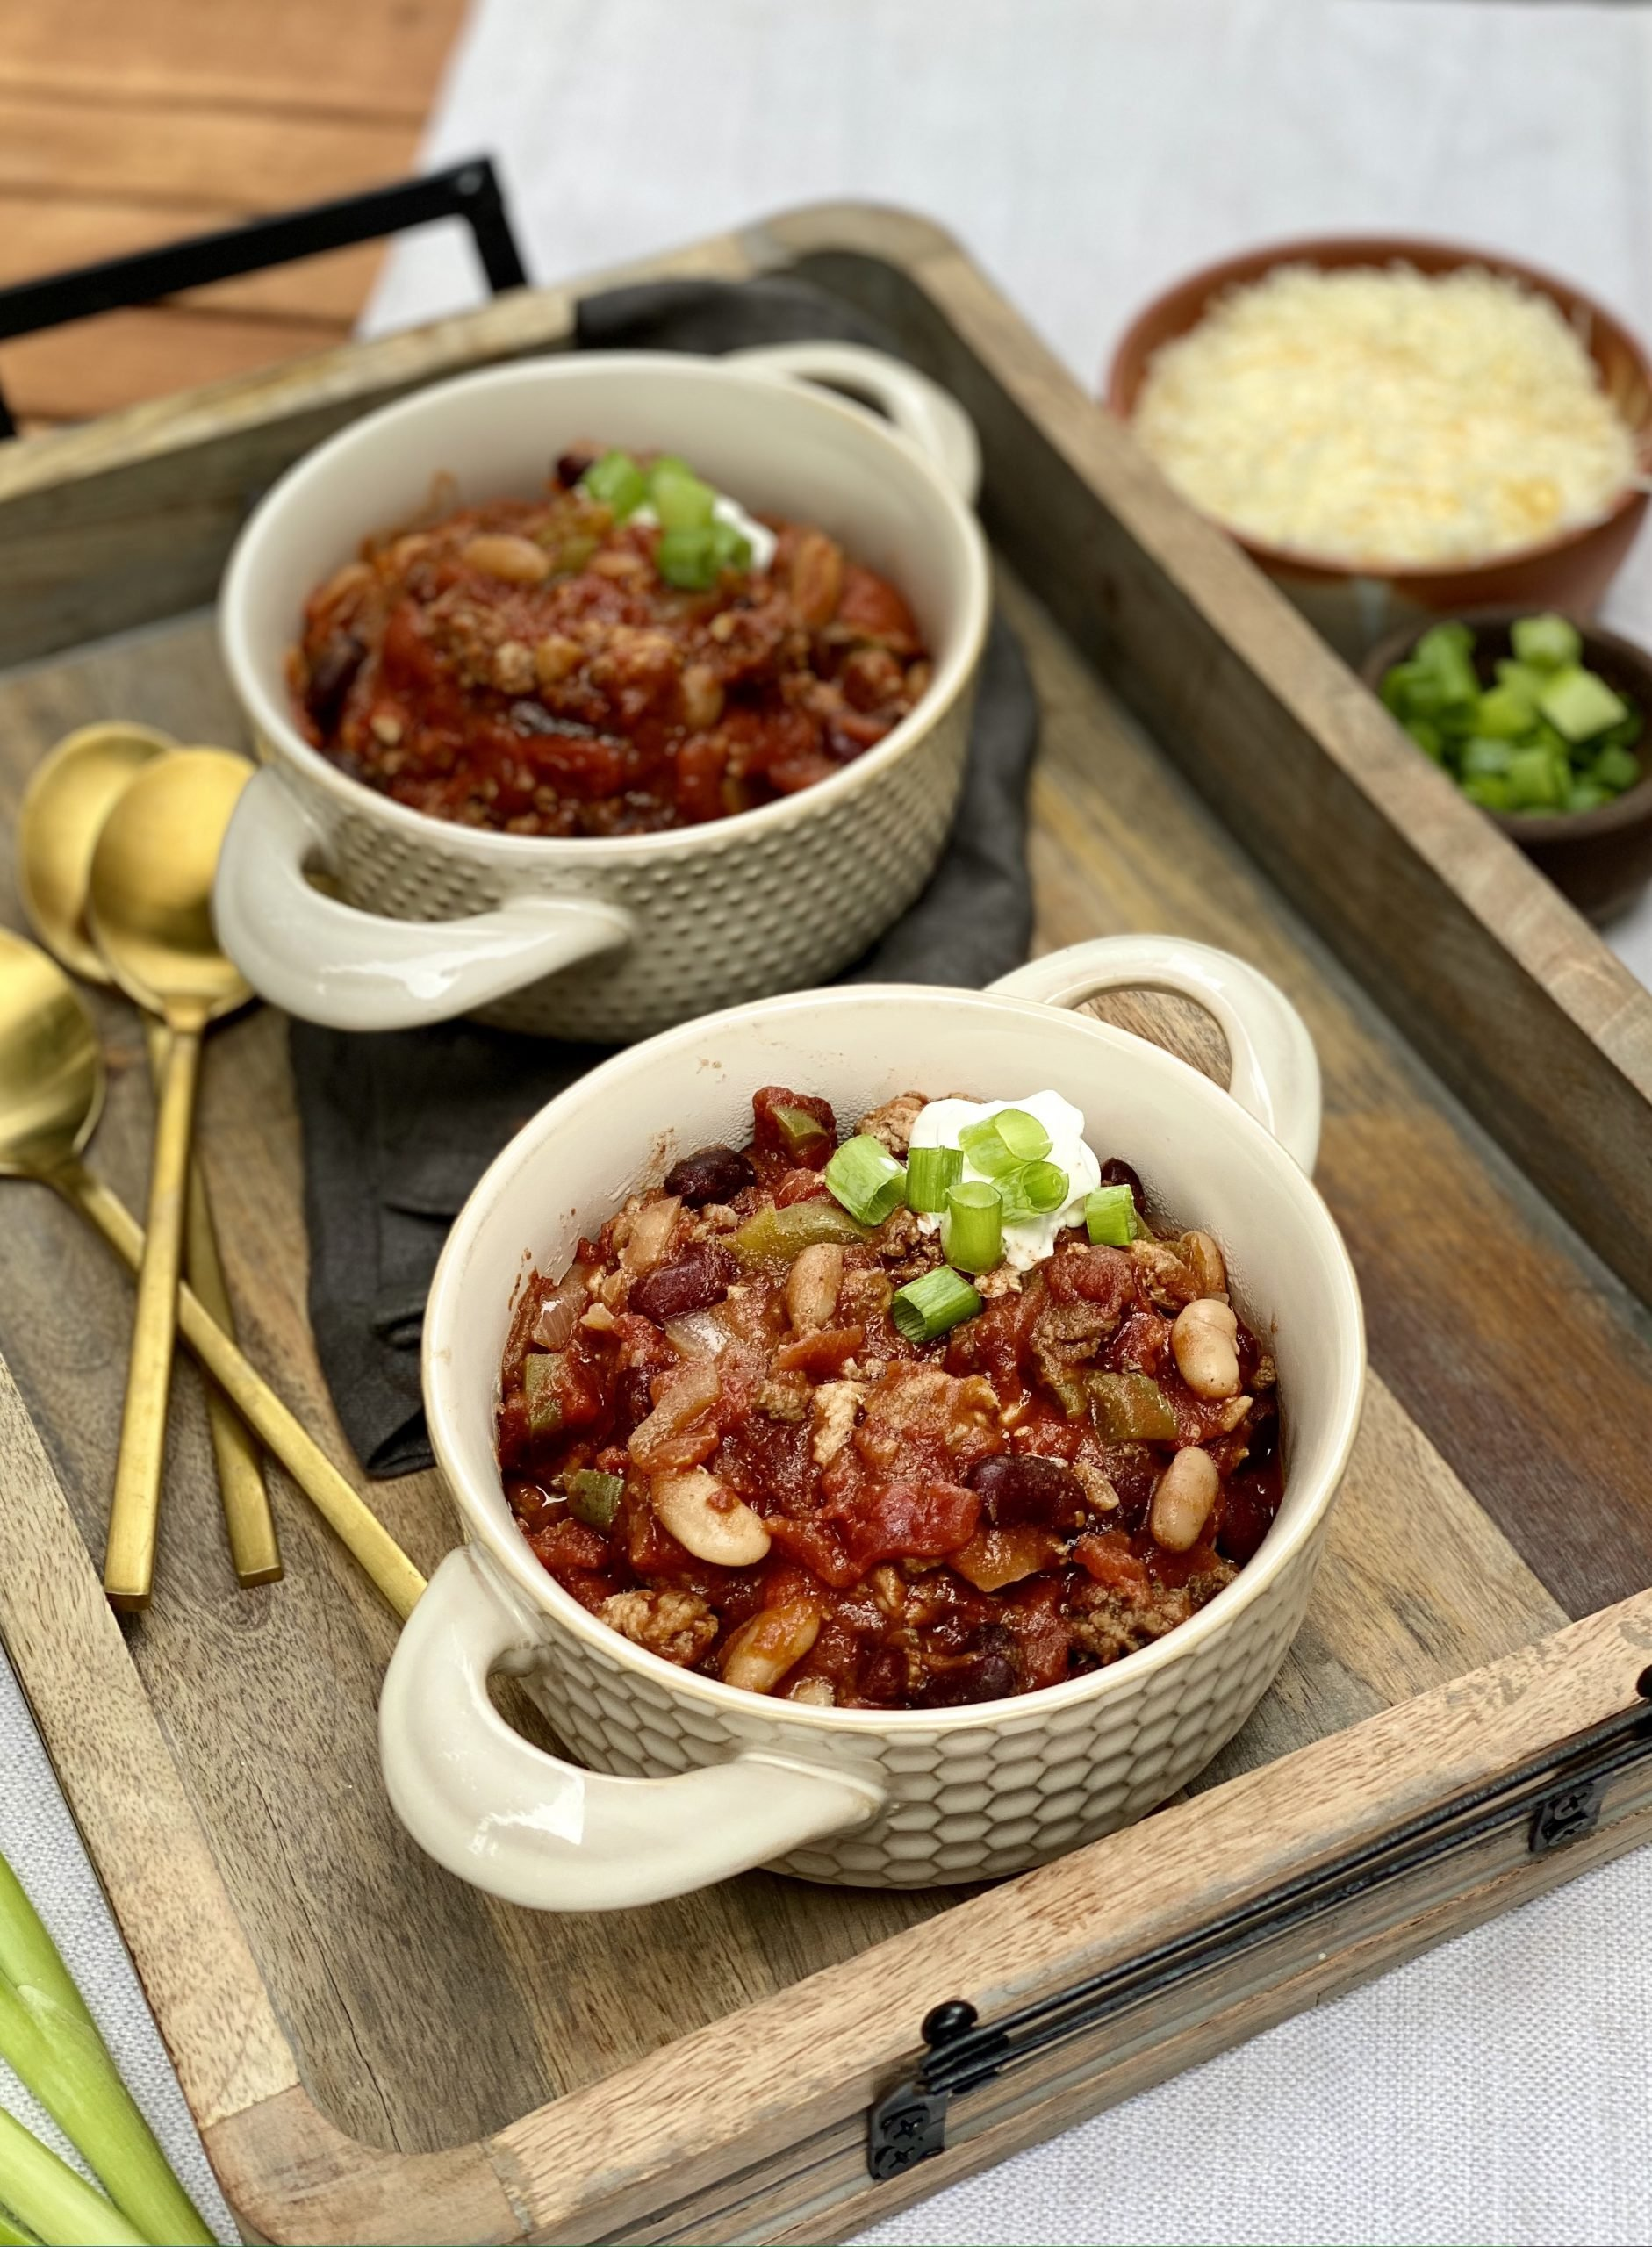 two bowls with chili with beans and ground beef garnished with cheese and green onions.